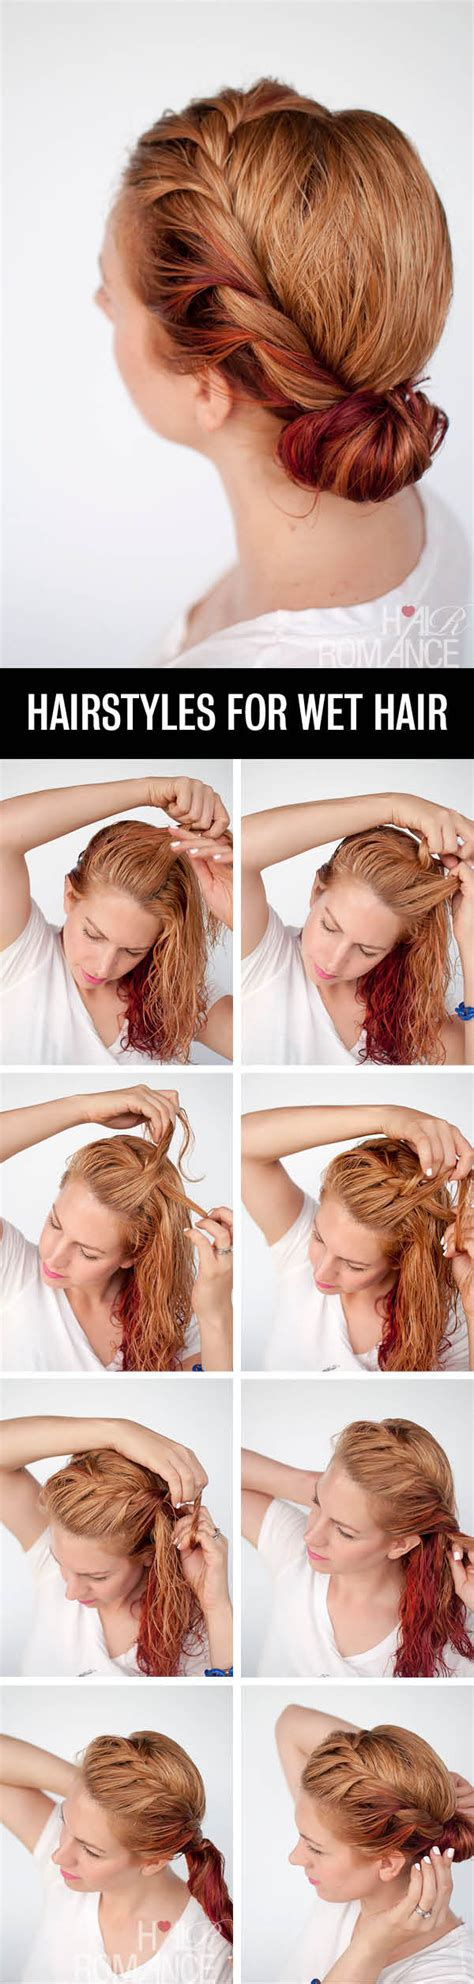 get ready fast with 7 easy hairstyle tutorials for wet